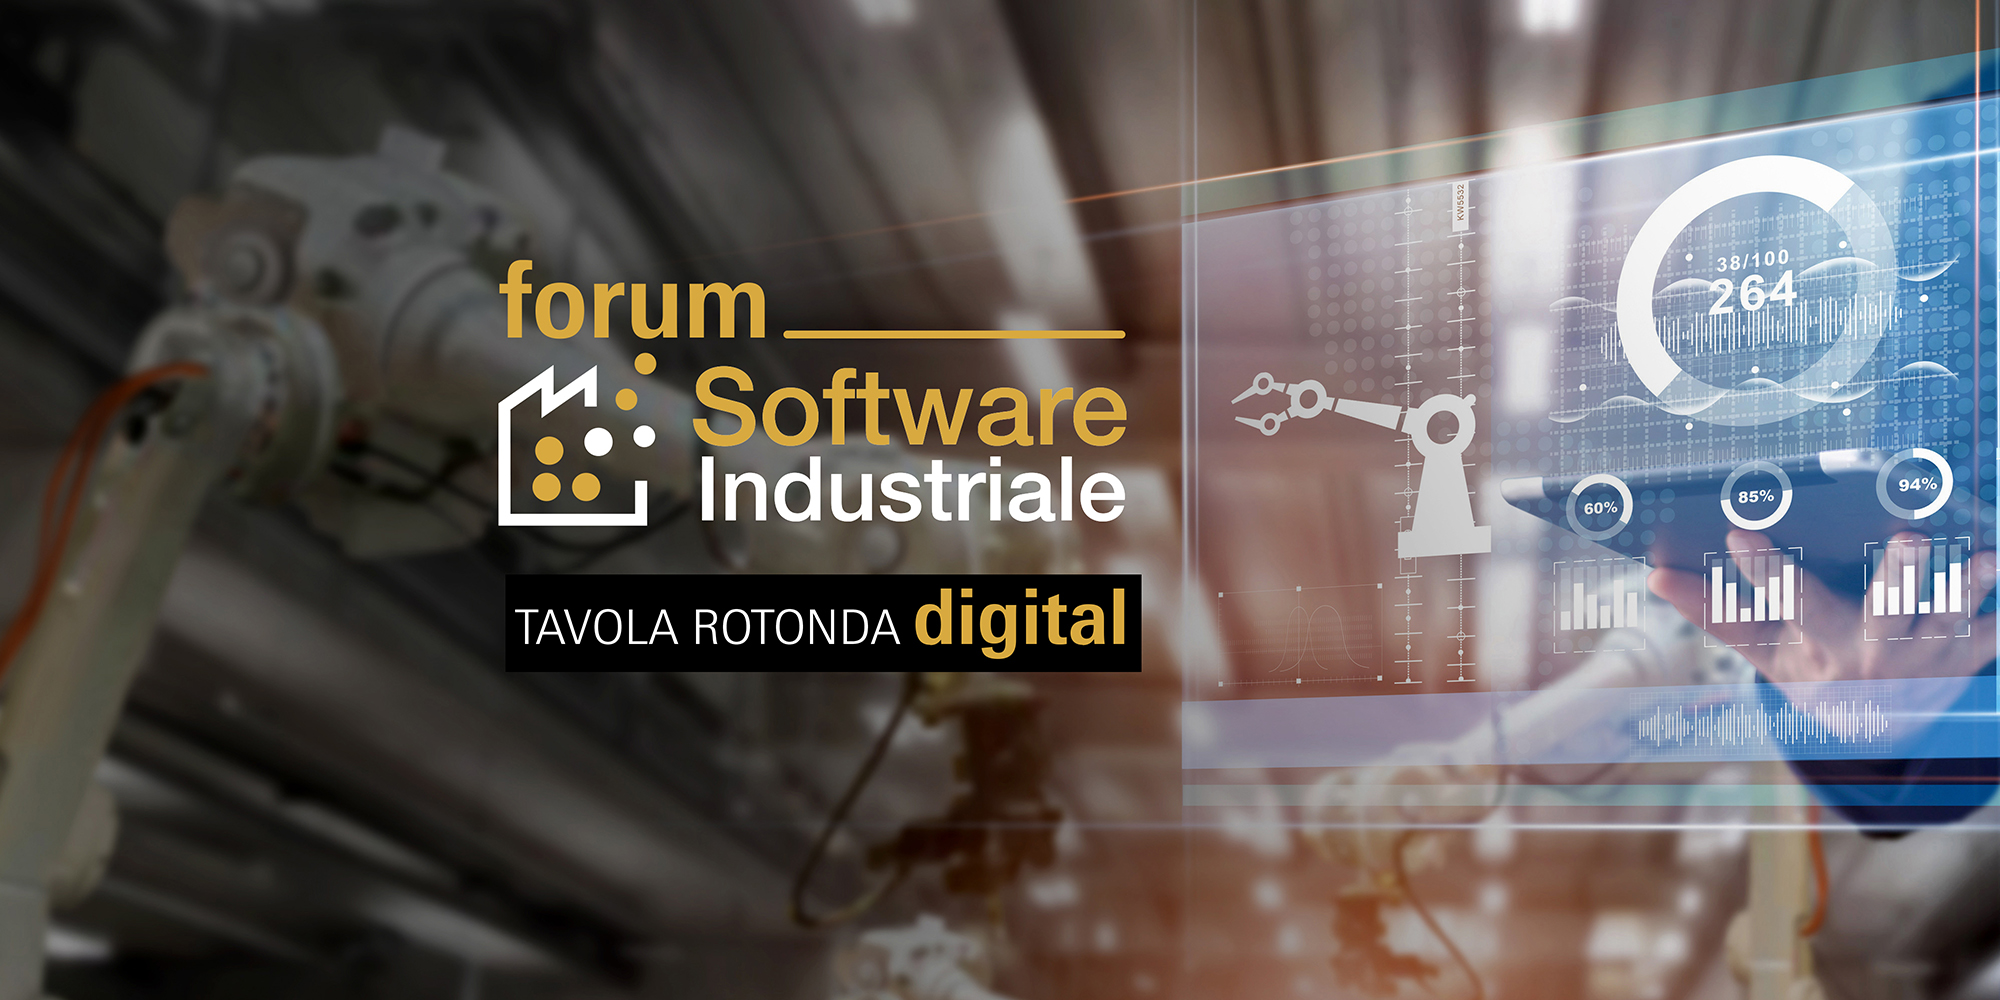 Forum Software Industriale - Tavola Rotonda